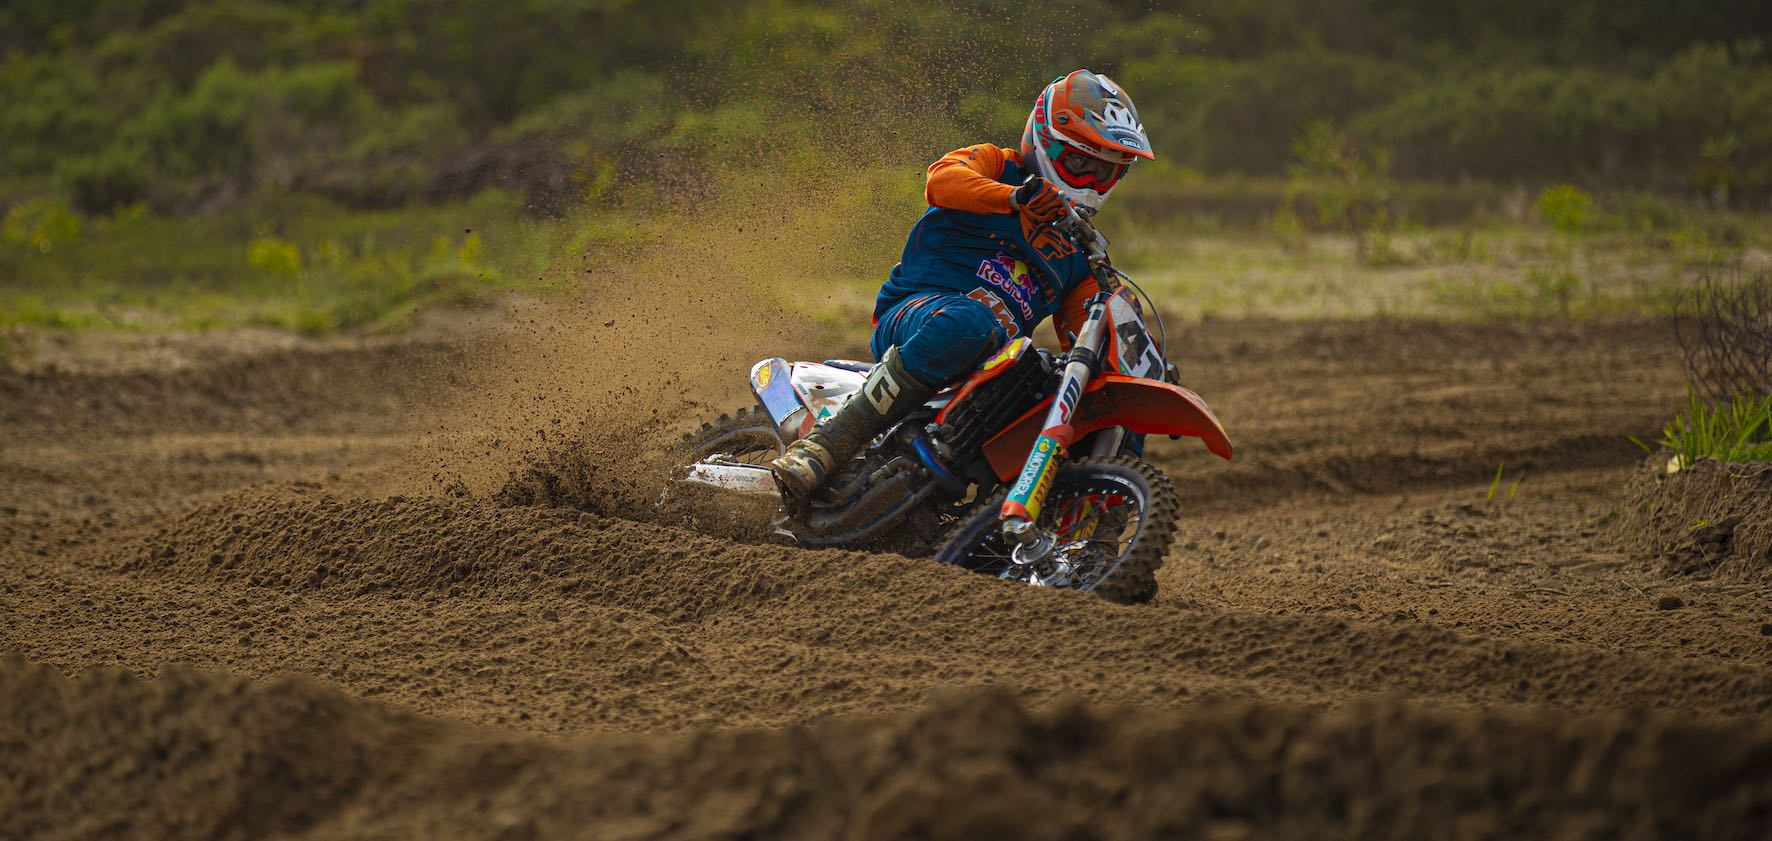 Tristan Purdon winning the MX1 class at Round 1 of the 2020 SA Motocross Nationals